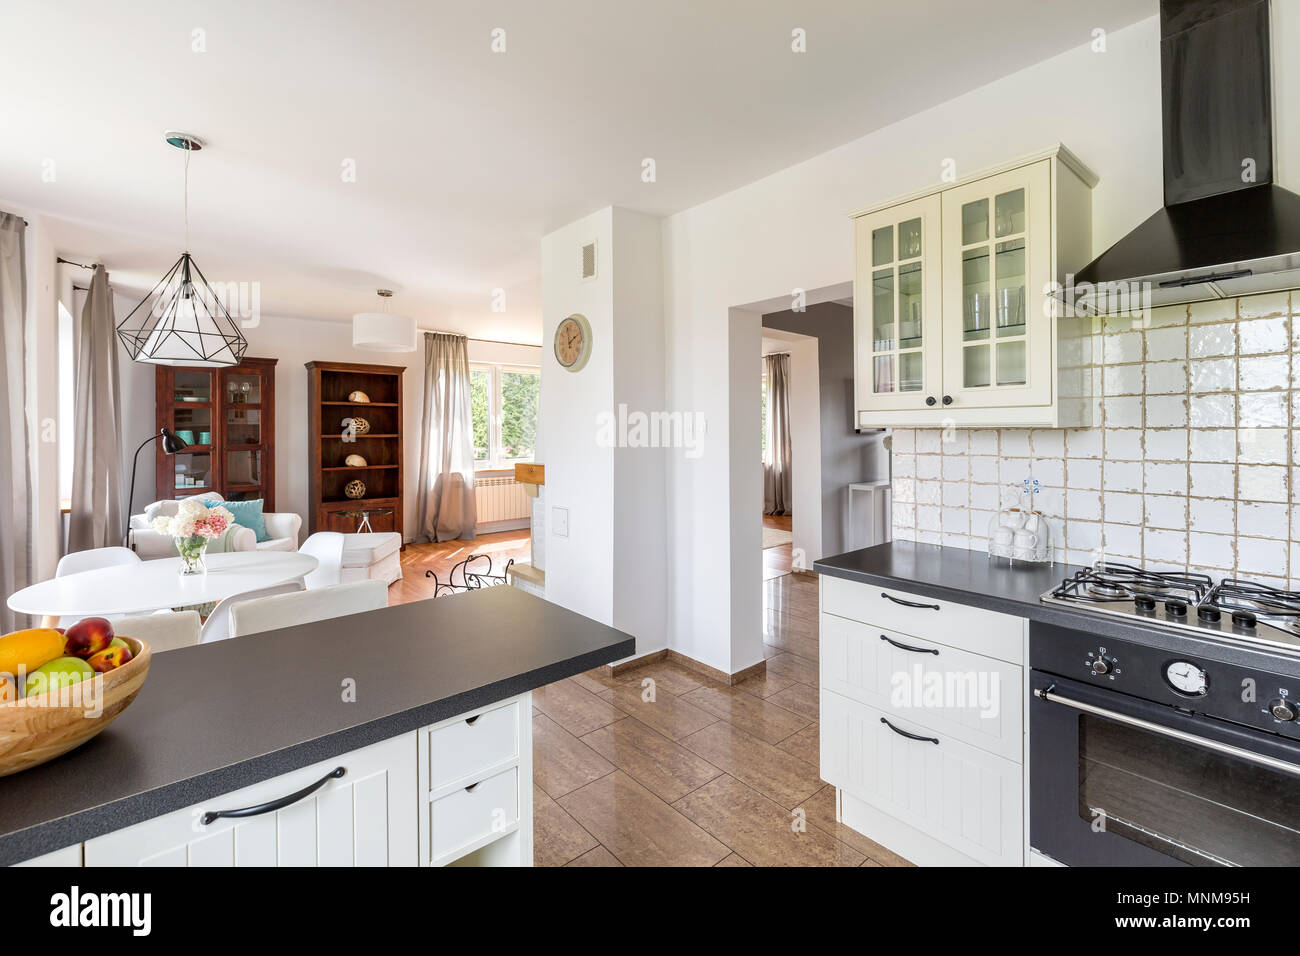 Small white kitchen open to a light dining area Stock Photo